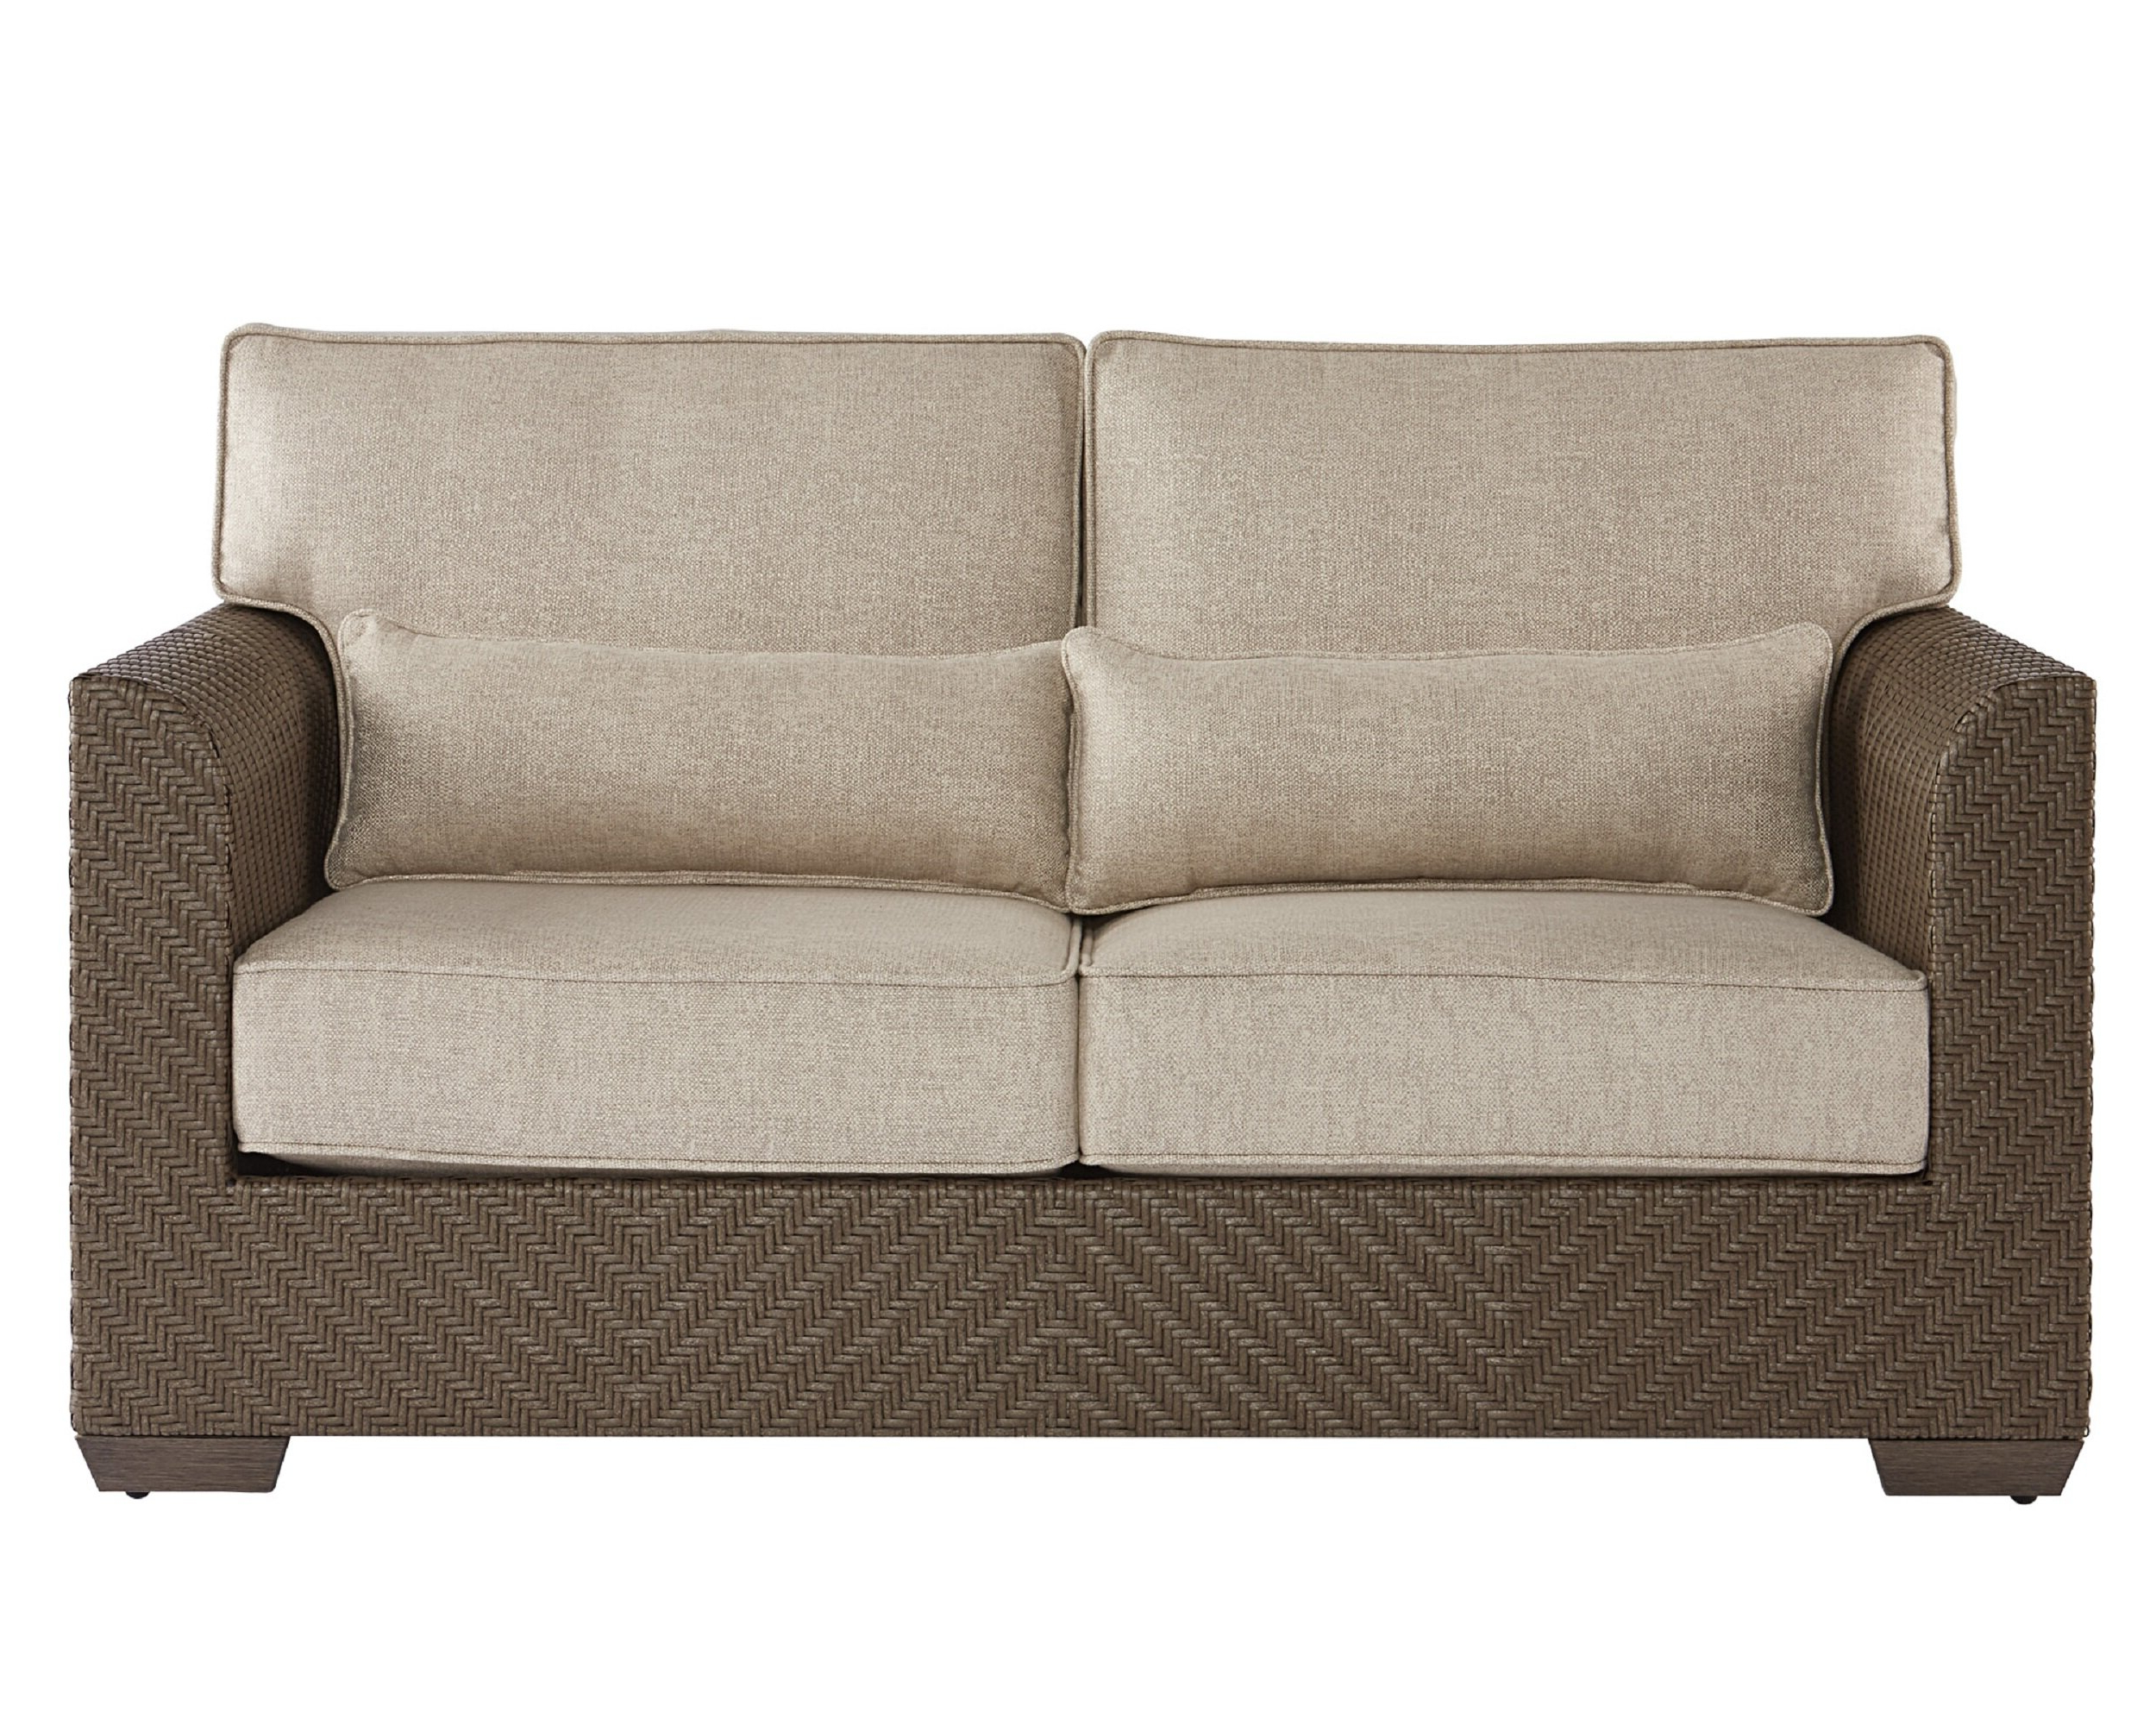 Astrid Wicker Patio Loveseat With Cushions Within Preferred Astrid Wicker Patio Sofas With Cushions (Gallery 2 of 25)